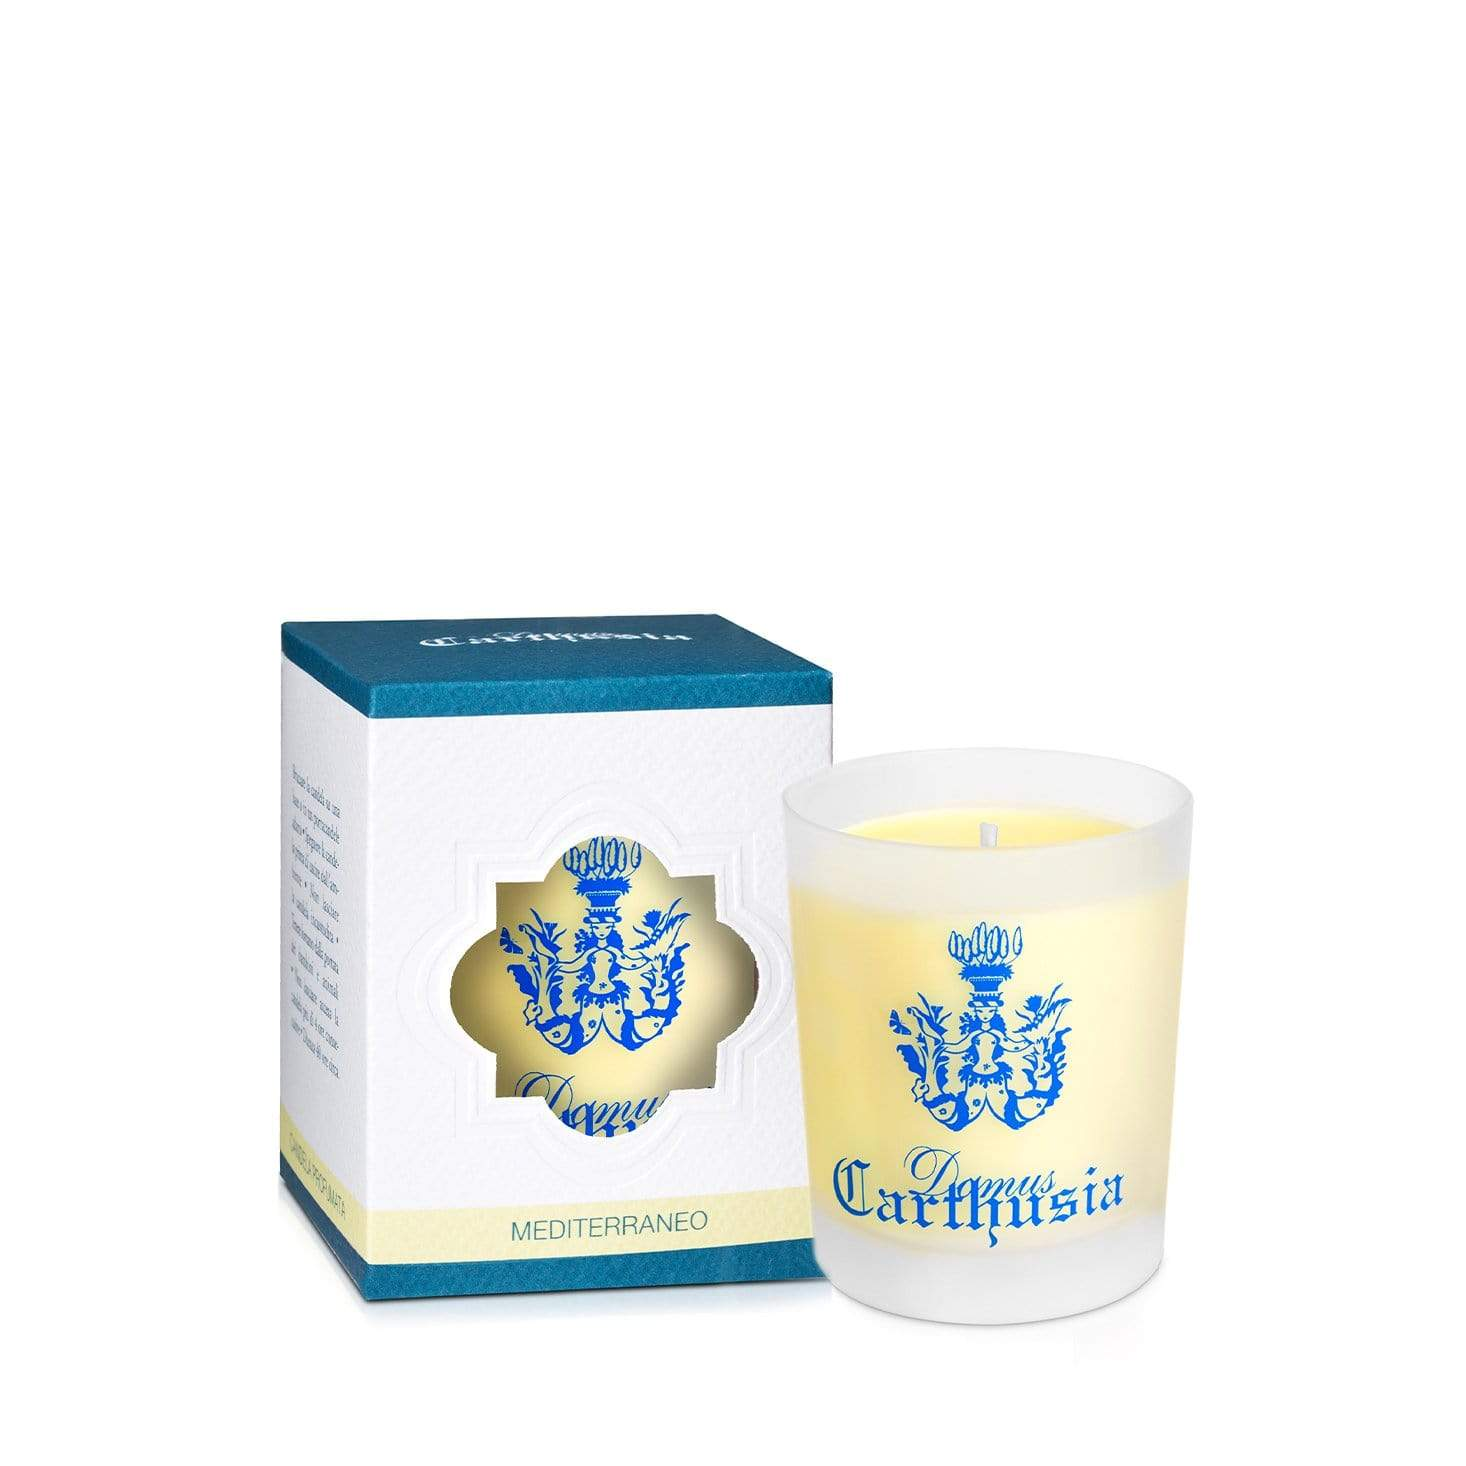 CARTHUSIA Mediterraneo Scented Candle - 70gm